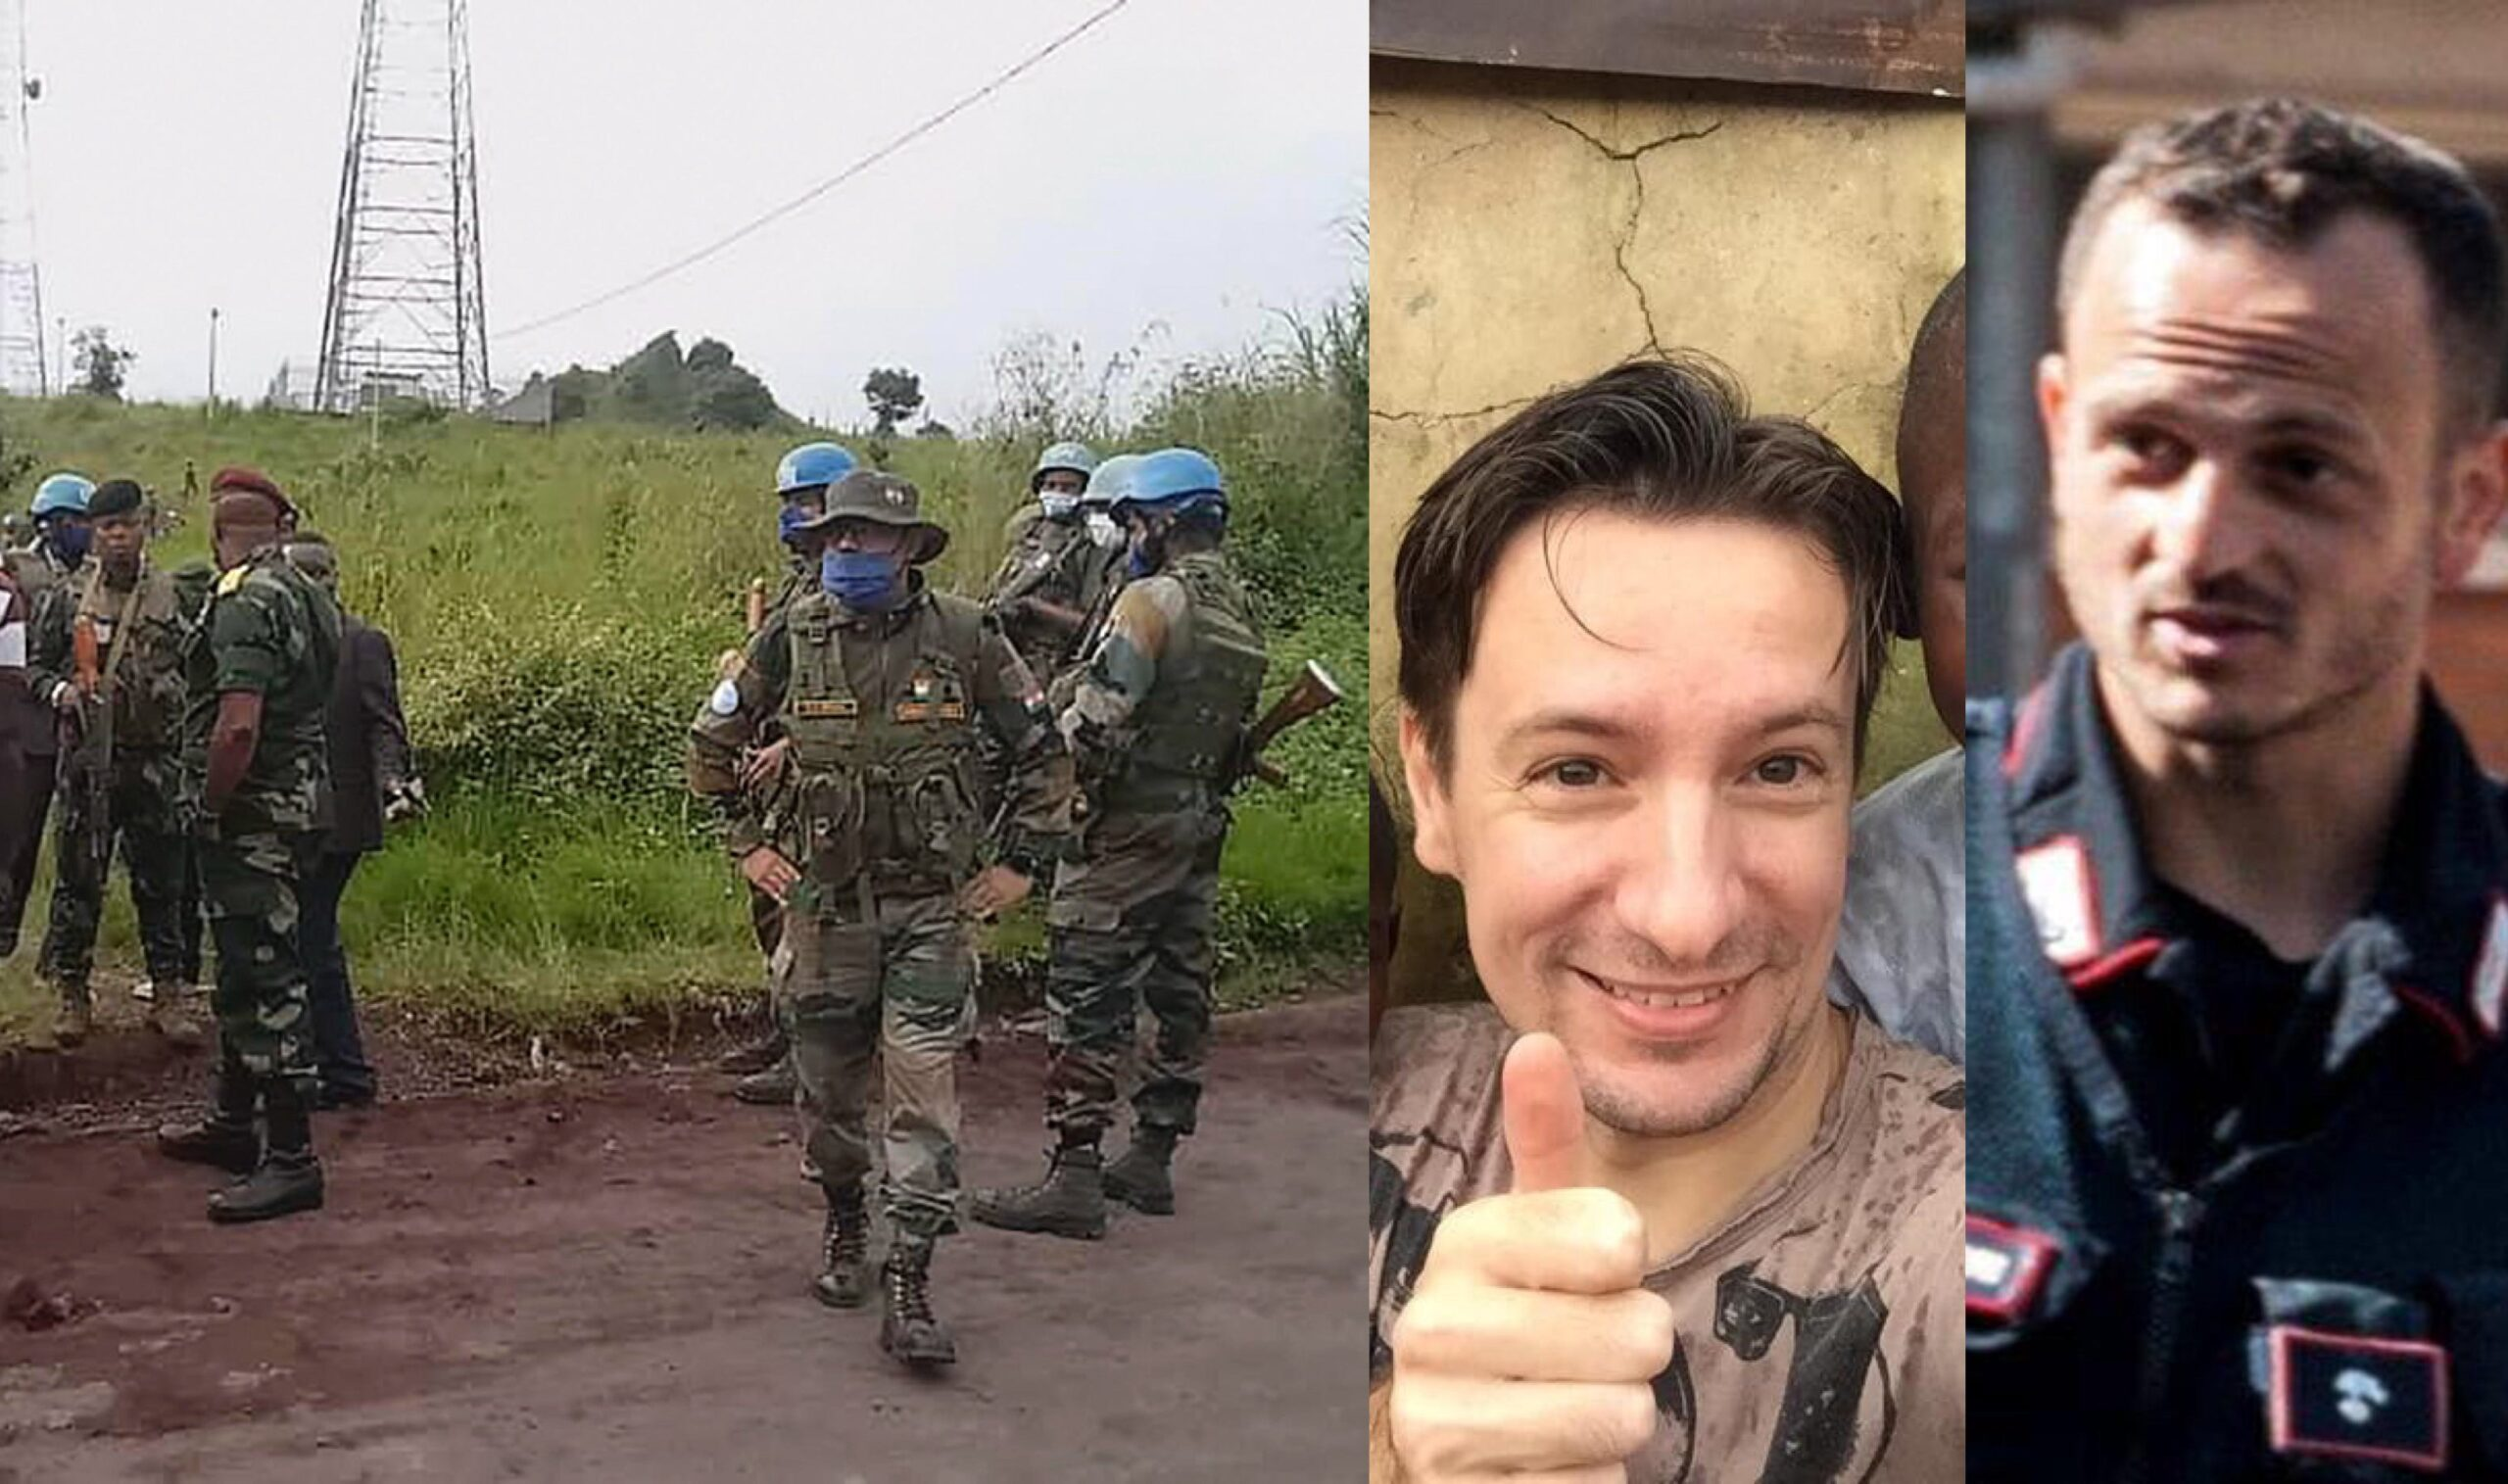 VILE ASSASSINIO IN CONGO